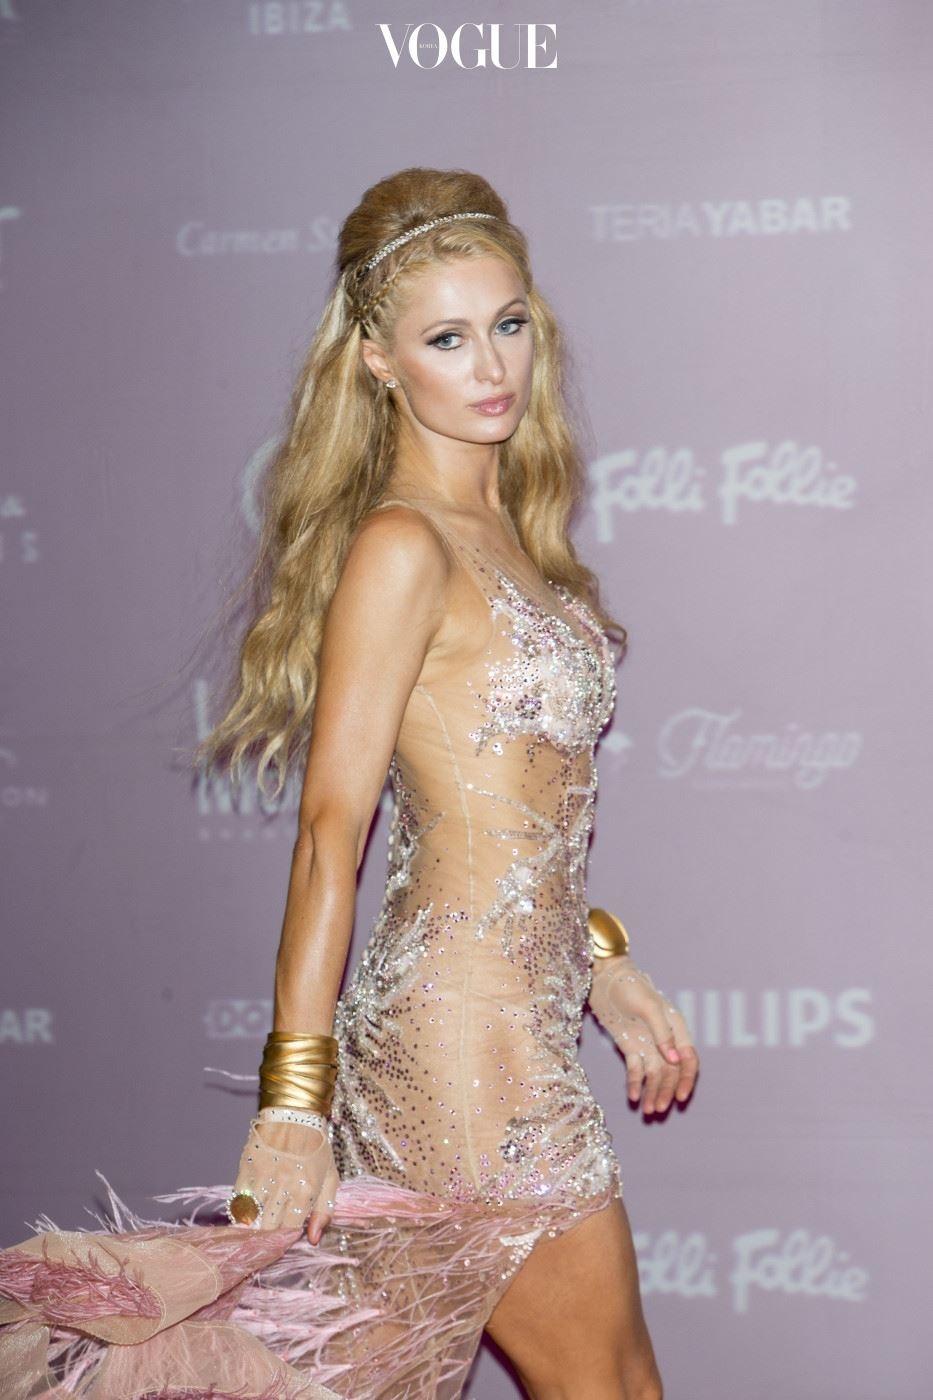 IBIZA, SPAIN - JULY 18: Paris Hilton presents 'Foam & Diamonds' on July 18, 2015 in Ibiza, Spain. (Photo by Iconic/All/Getty Images)